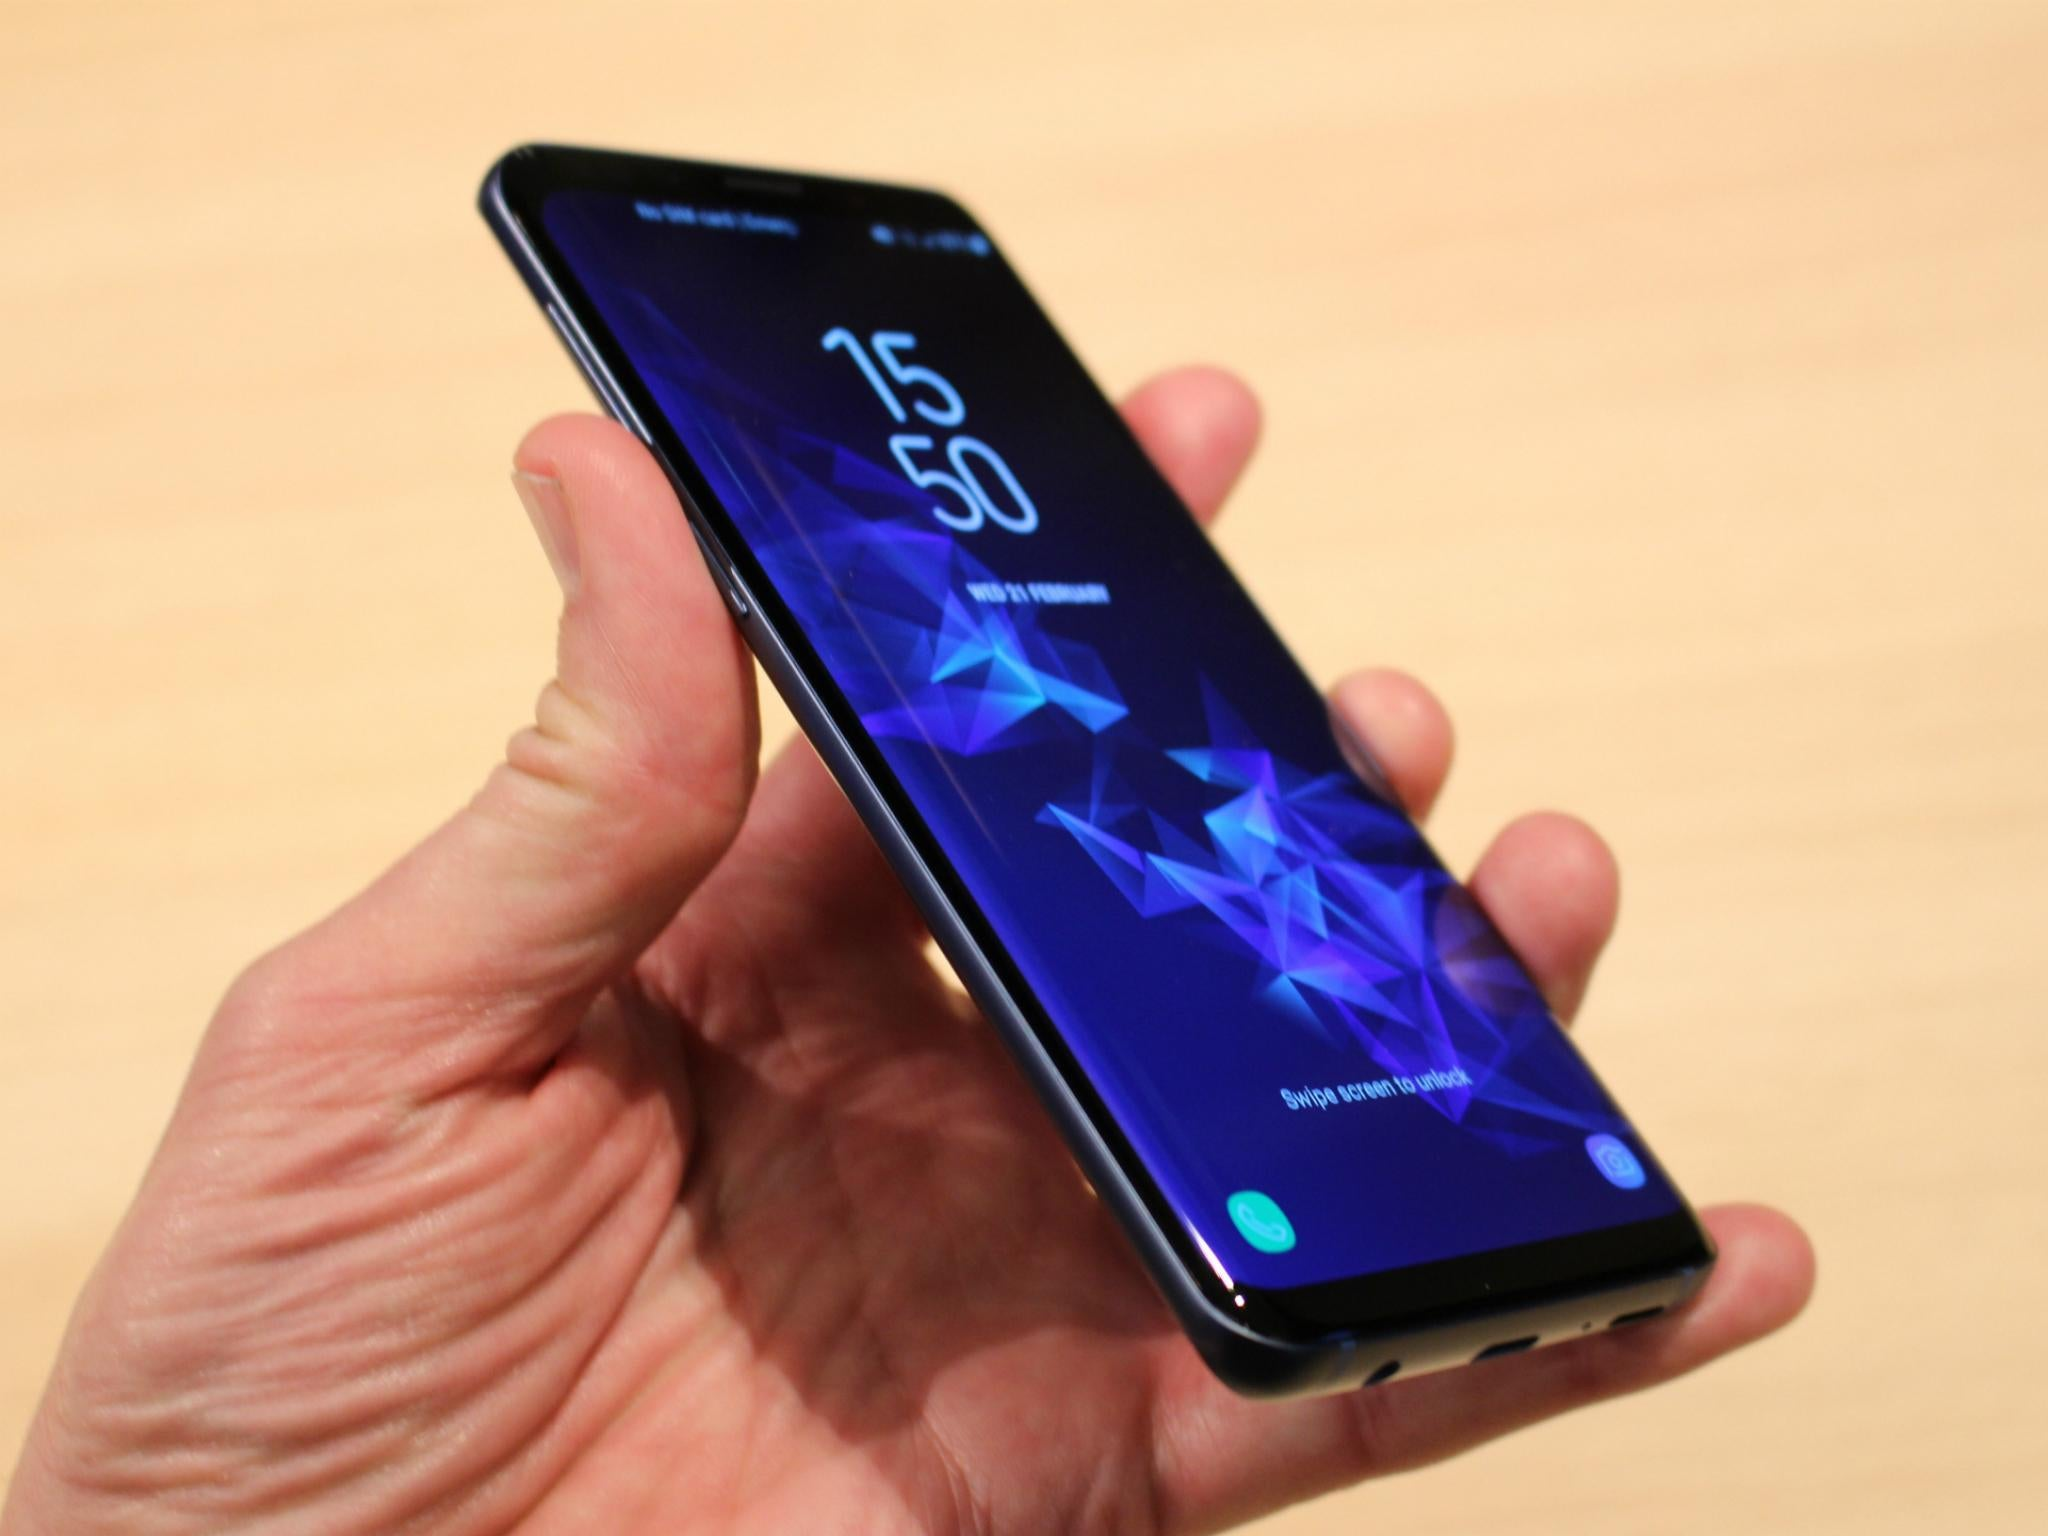 Samsung Galaxy S9 hands-on review: A stunning phone with an